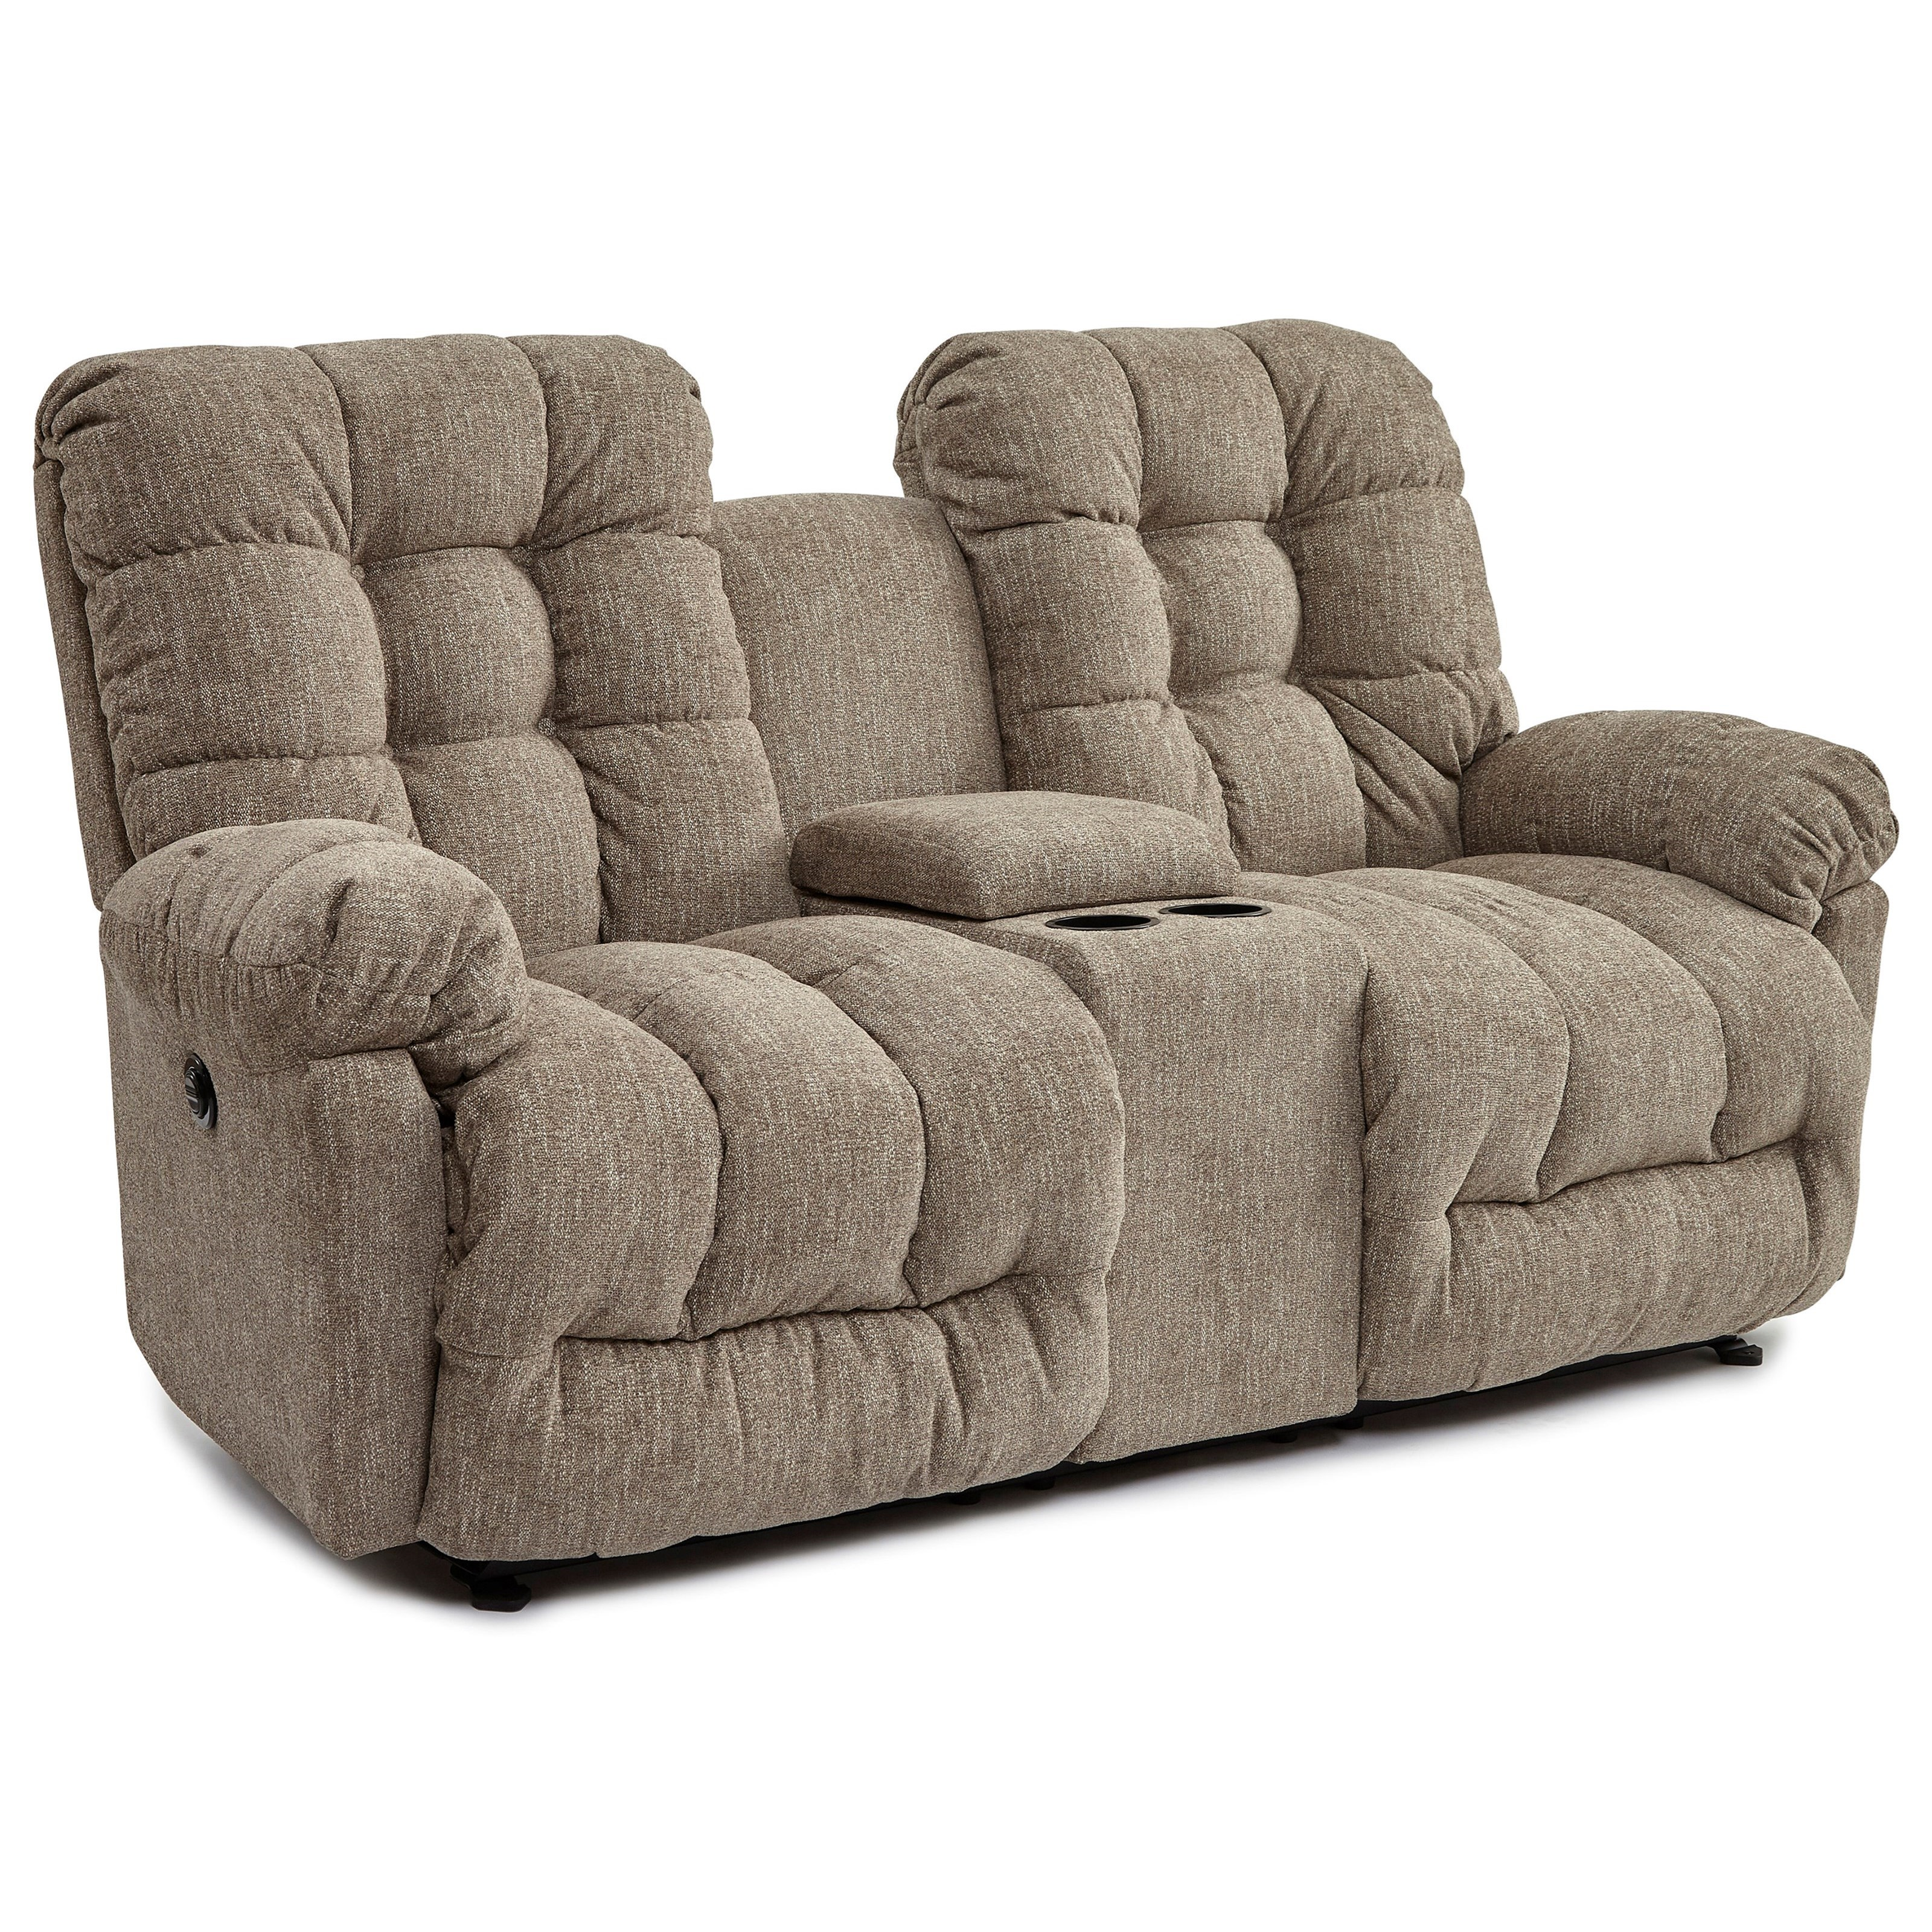 Everlasting Power Rocking Reclining Loveseat w/ Console by Best Home Furnishings at Baer's Furniture